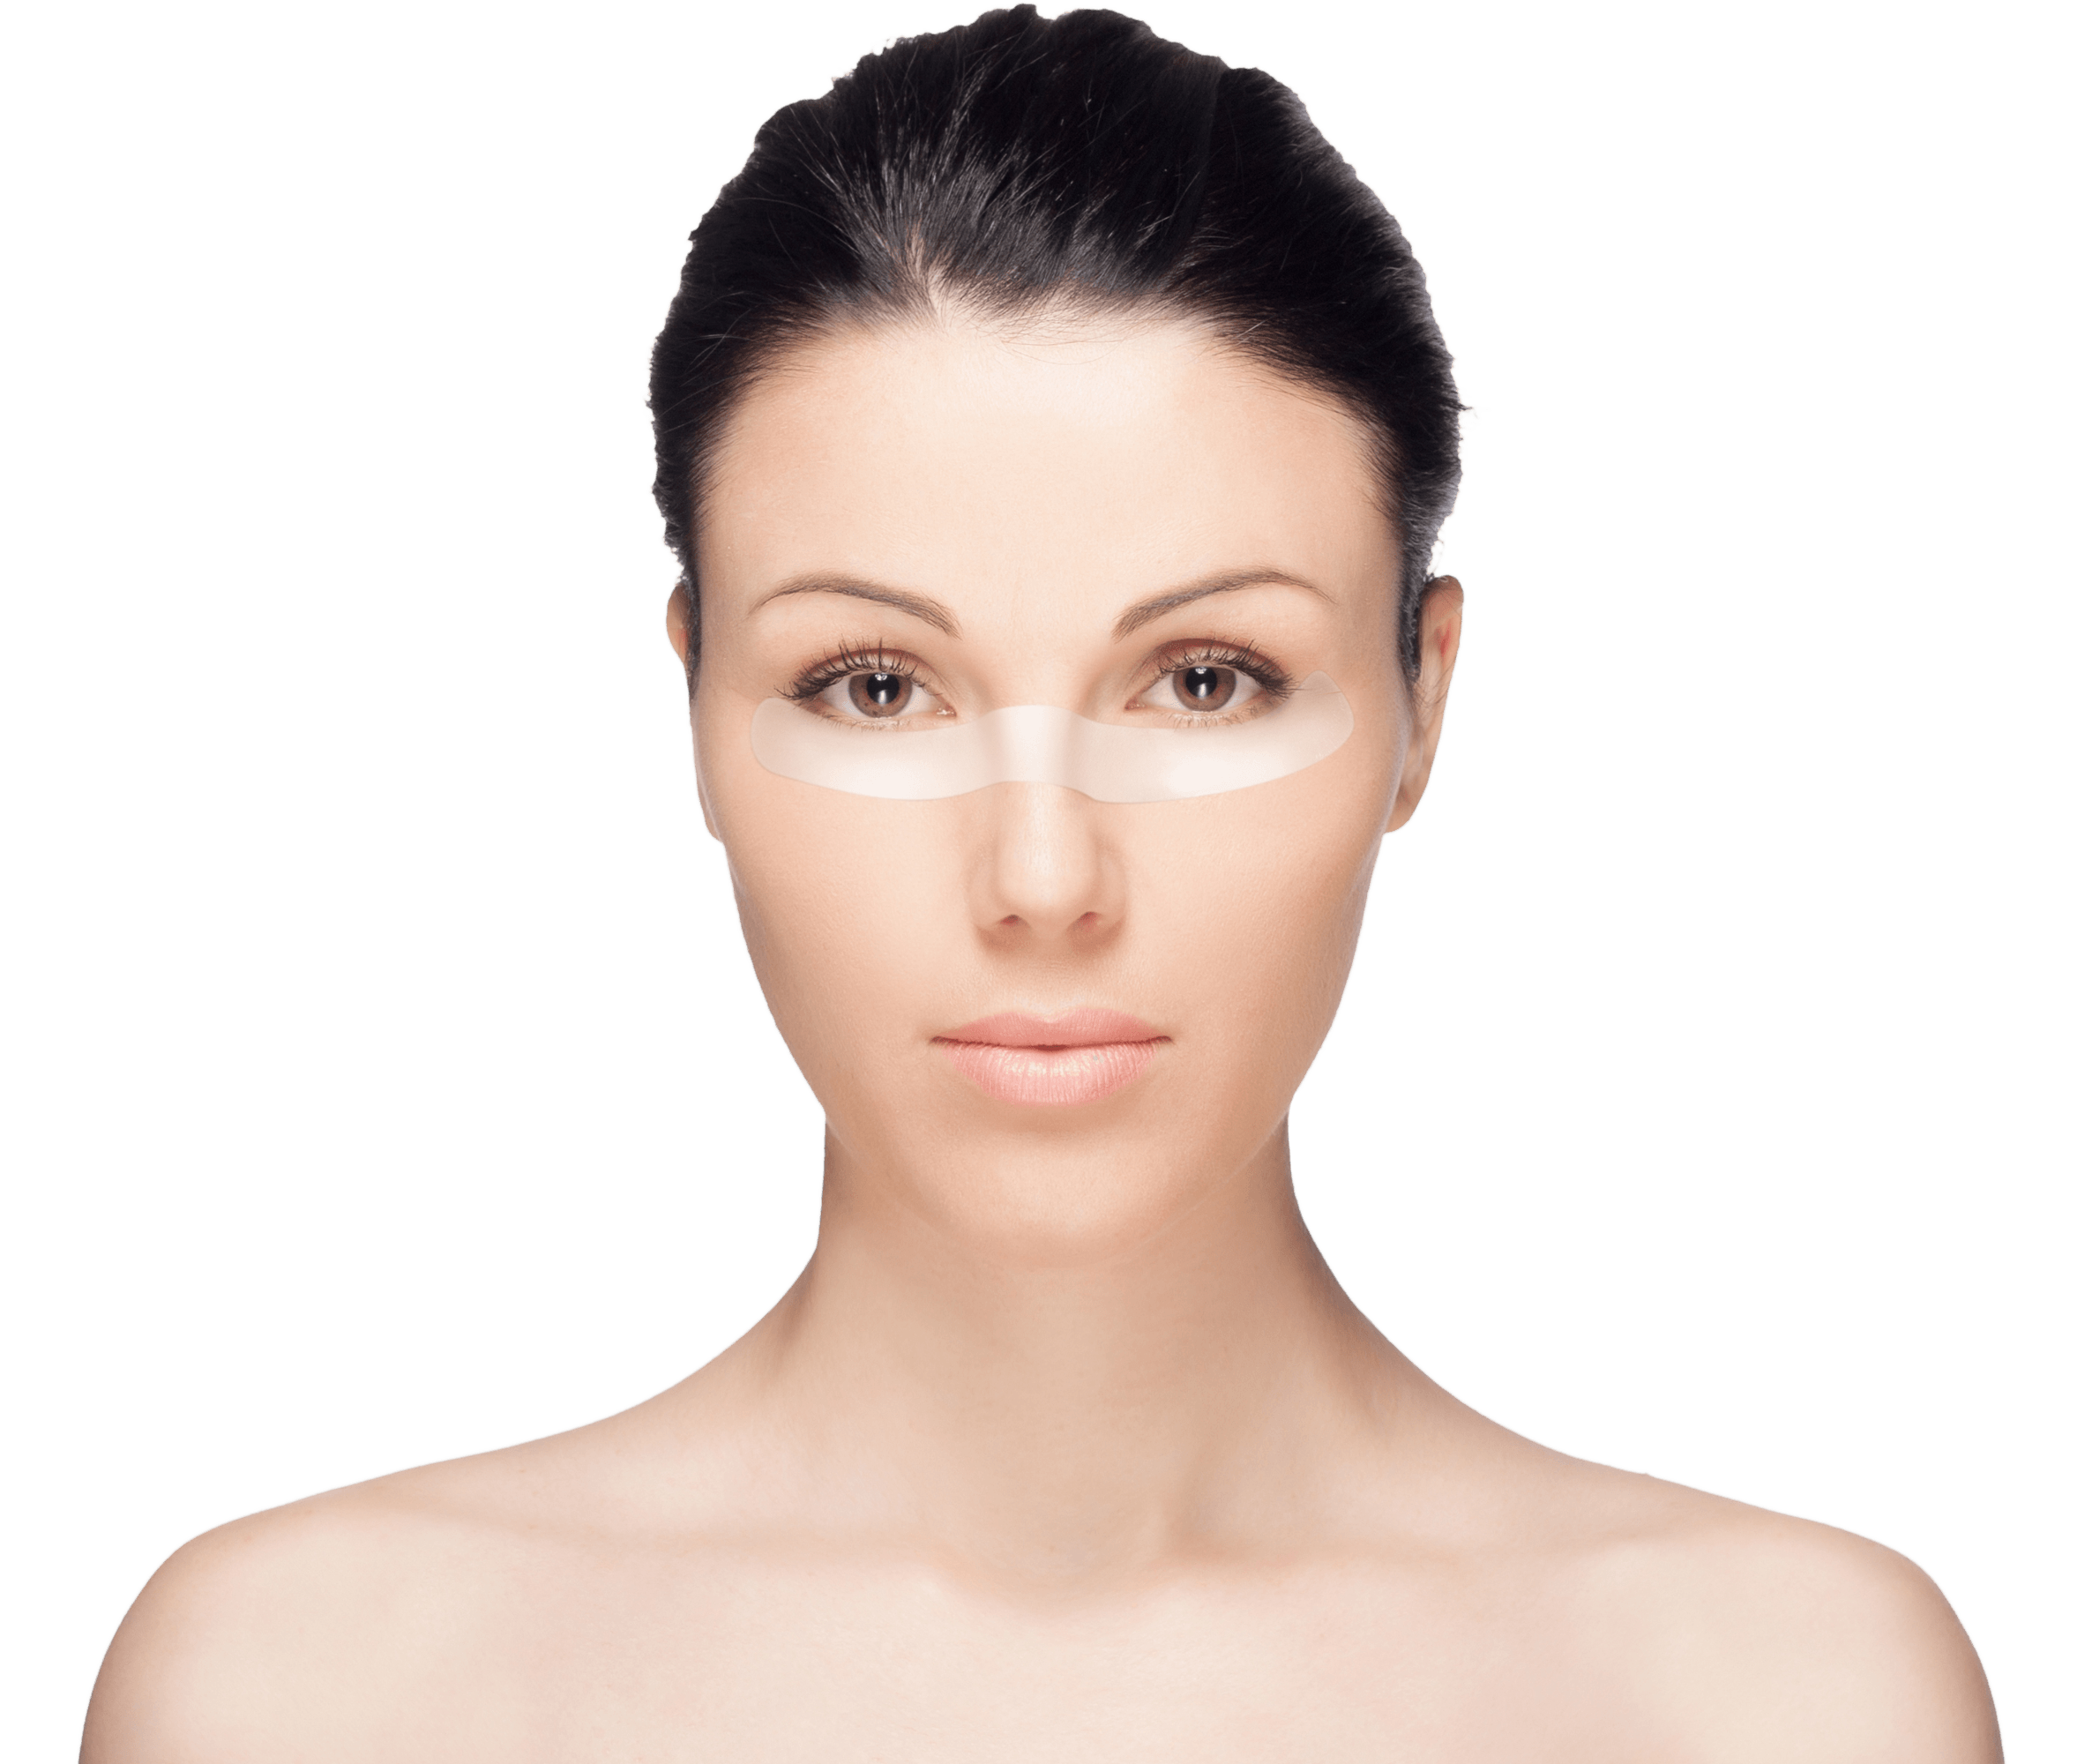 WHAT ARE THE EFFECTS OF UVB AND UVA RAYS ON THE SKIN?